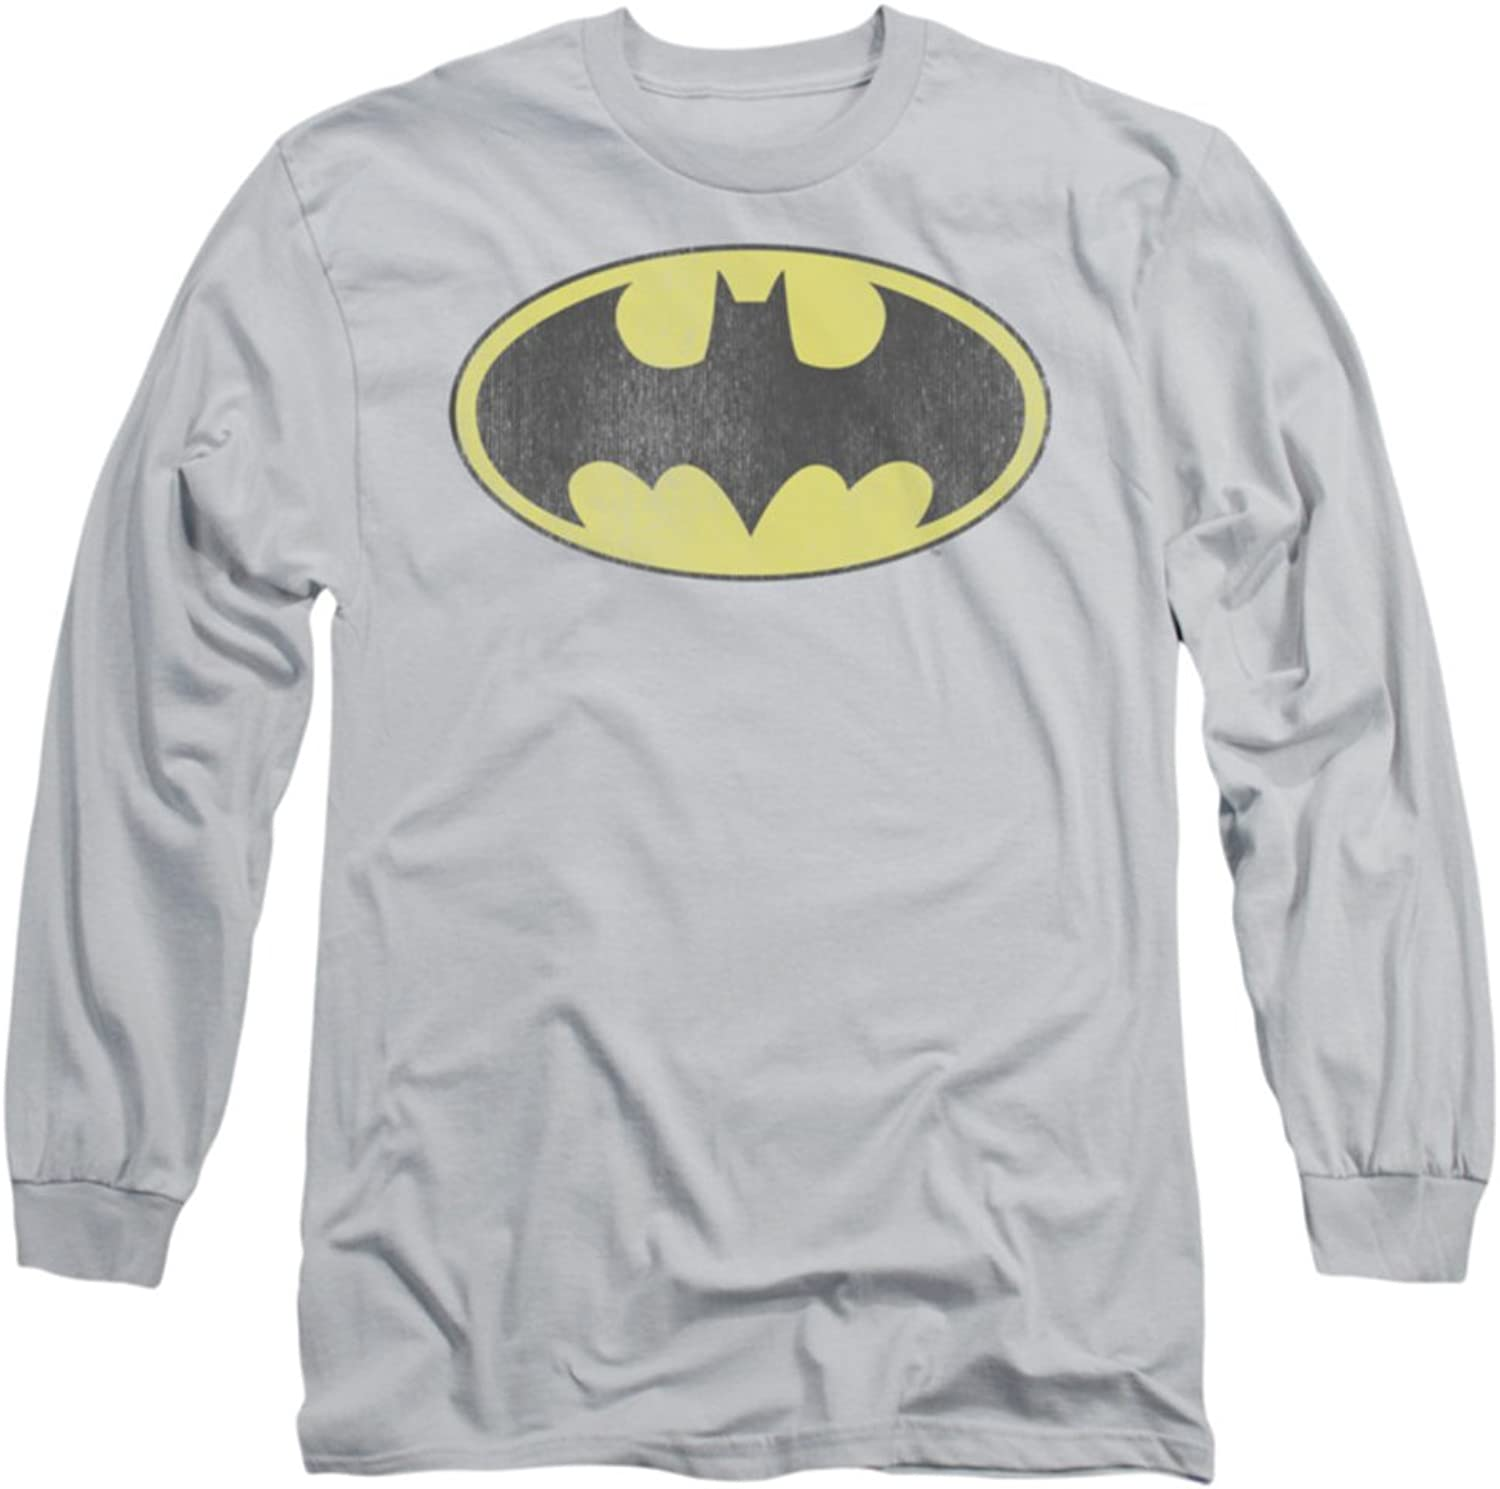 DC Retro Bat Logo Distressed Officially Licensed Adult Long Sleeves T Shirt